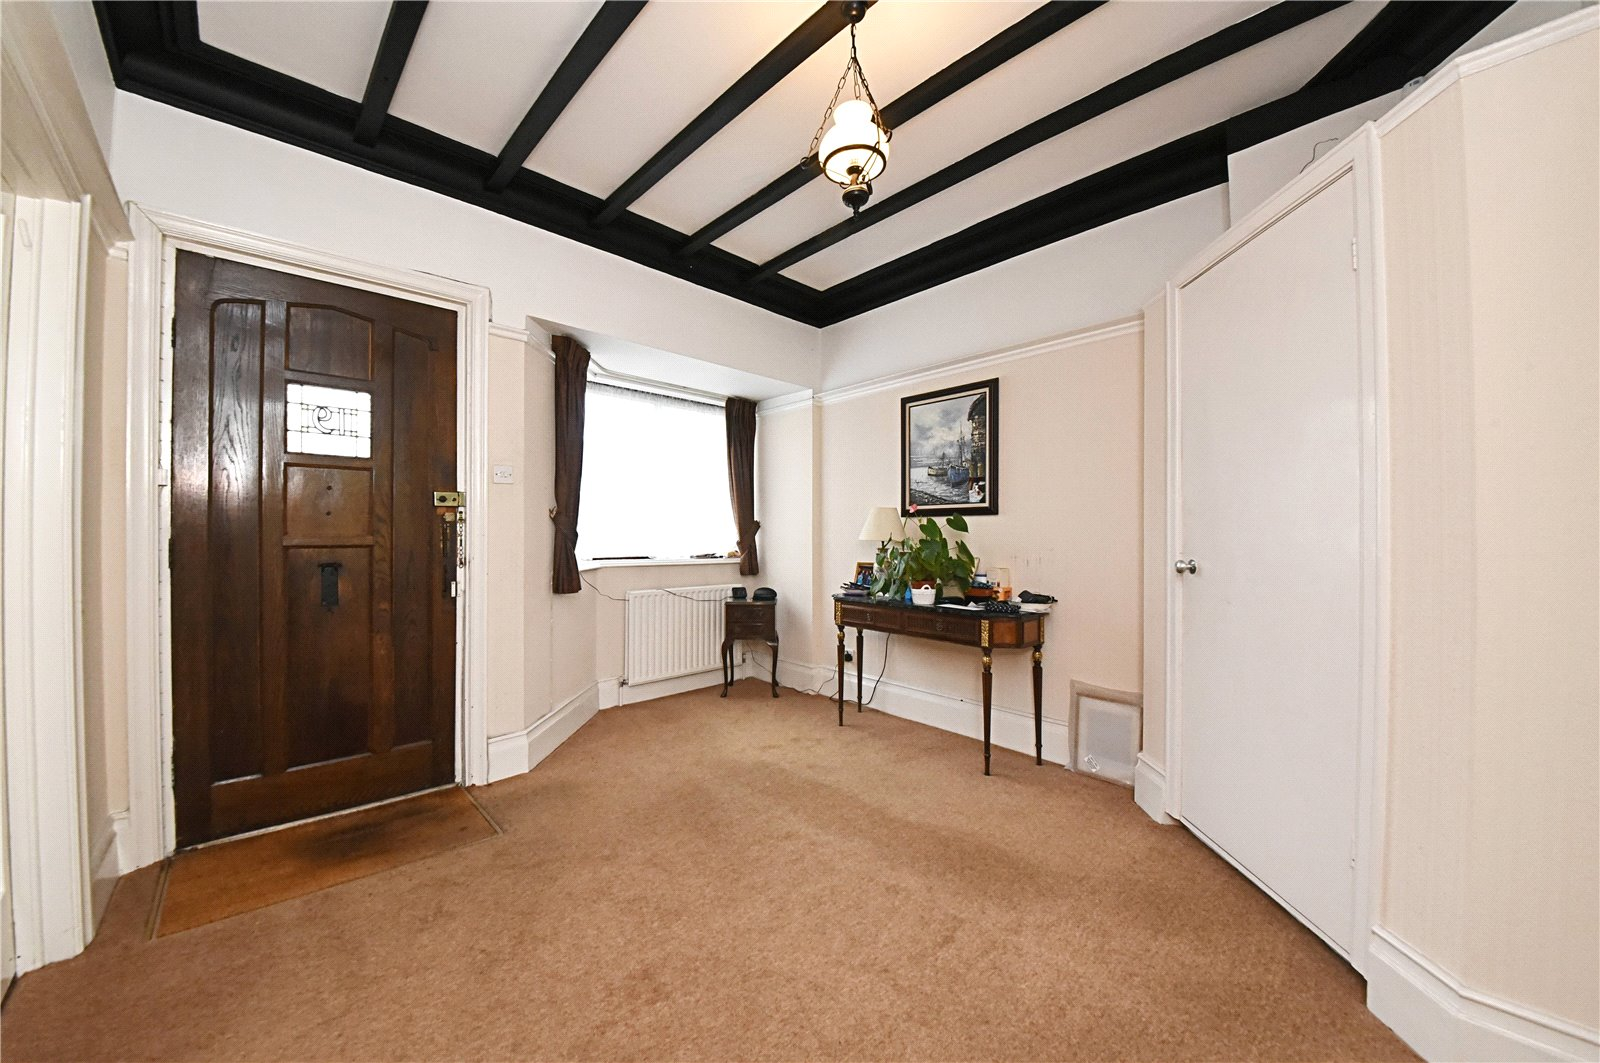 4 bed house for sale in Whetstone, N20 9ED  - Property Image 4